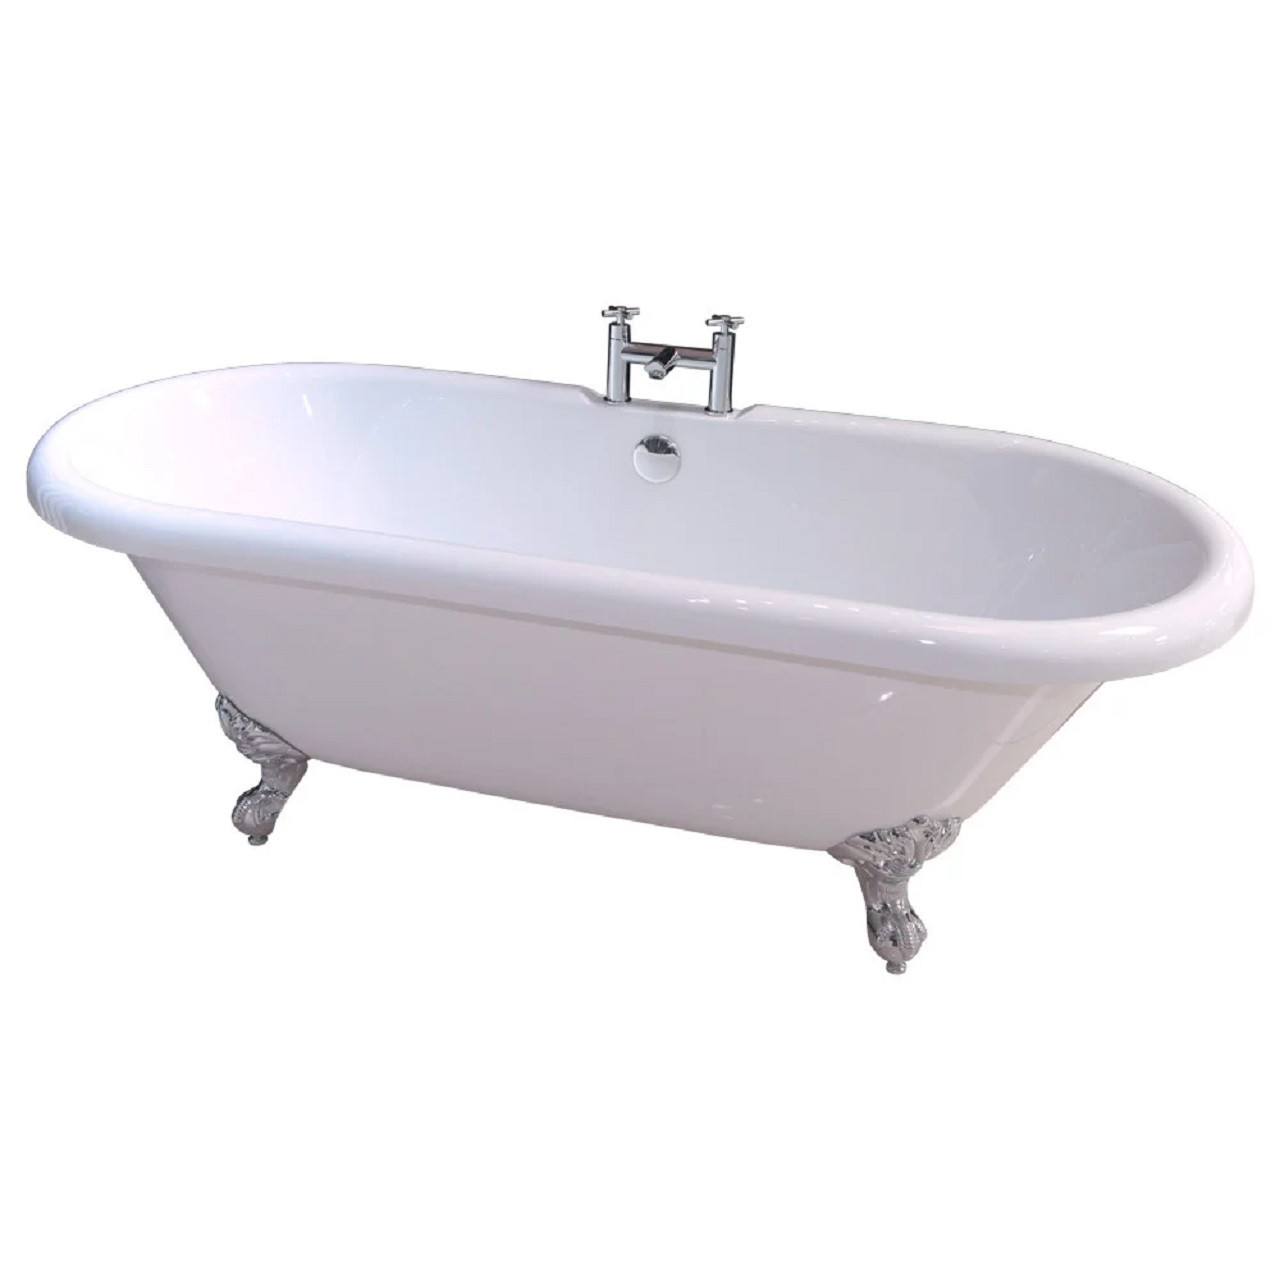 Windsor 1695mm x 755mm Double Ended Freestanding Roll Top Bath with Chrome Ball & Claw Feet